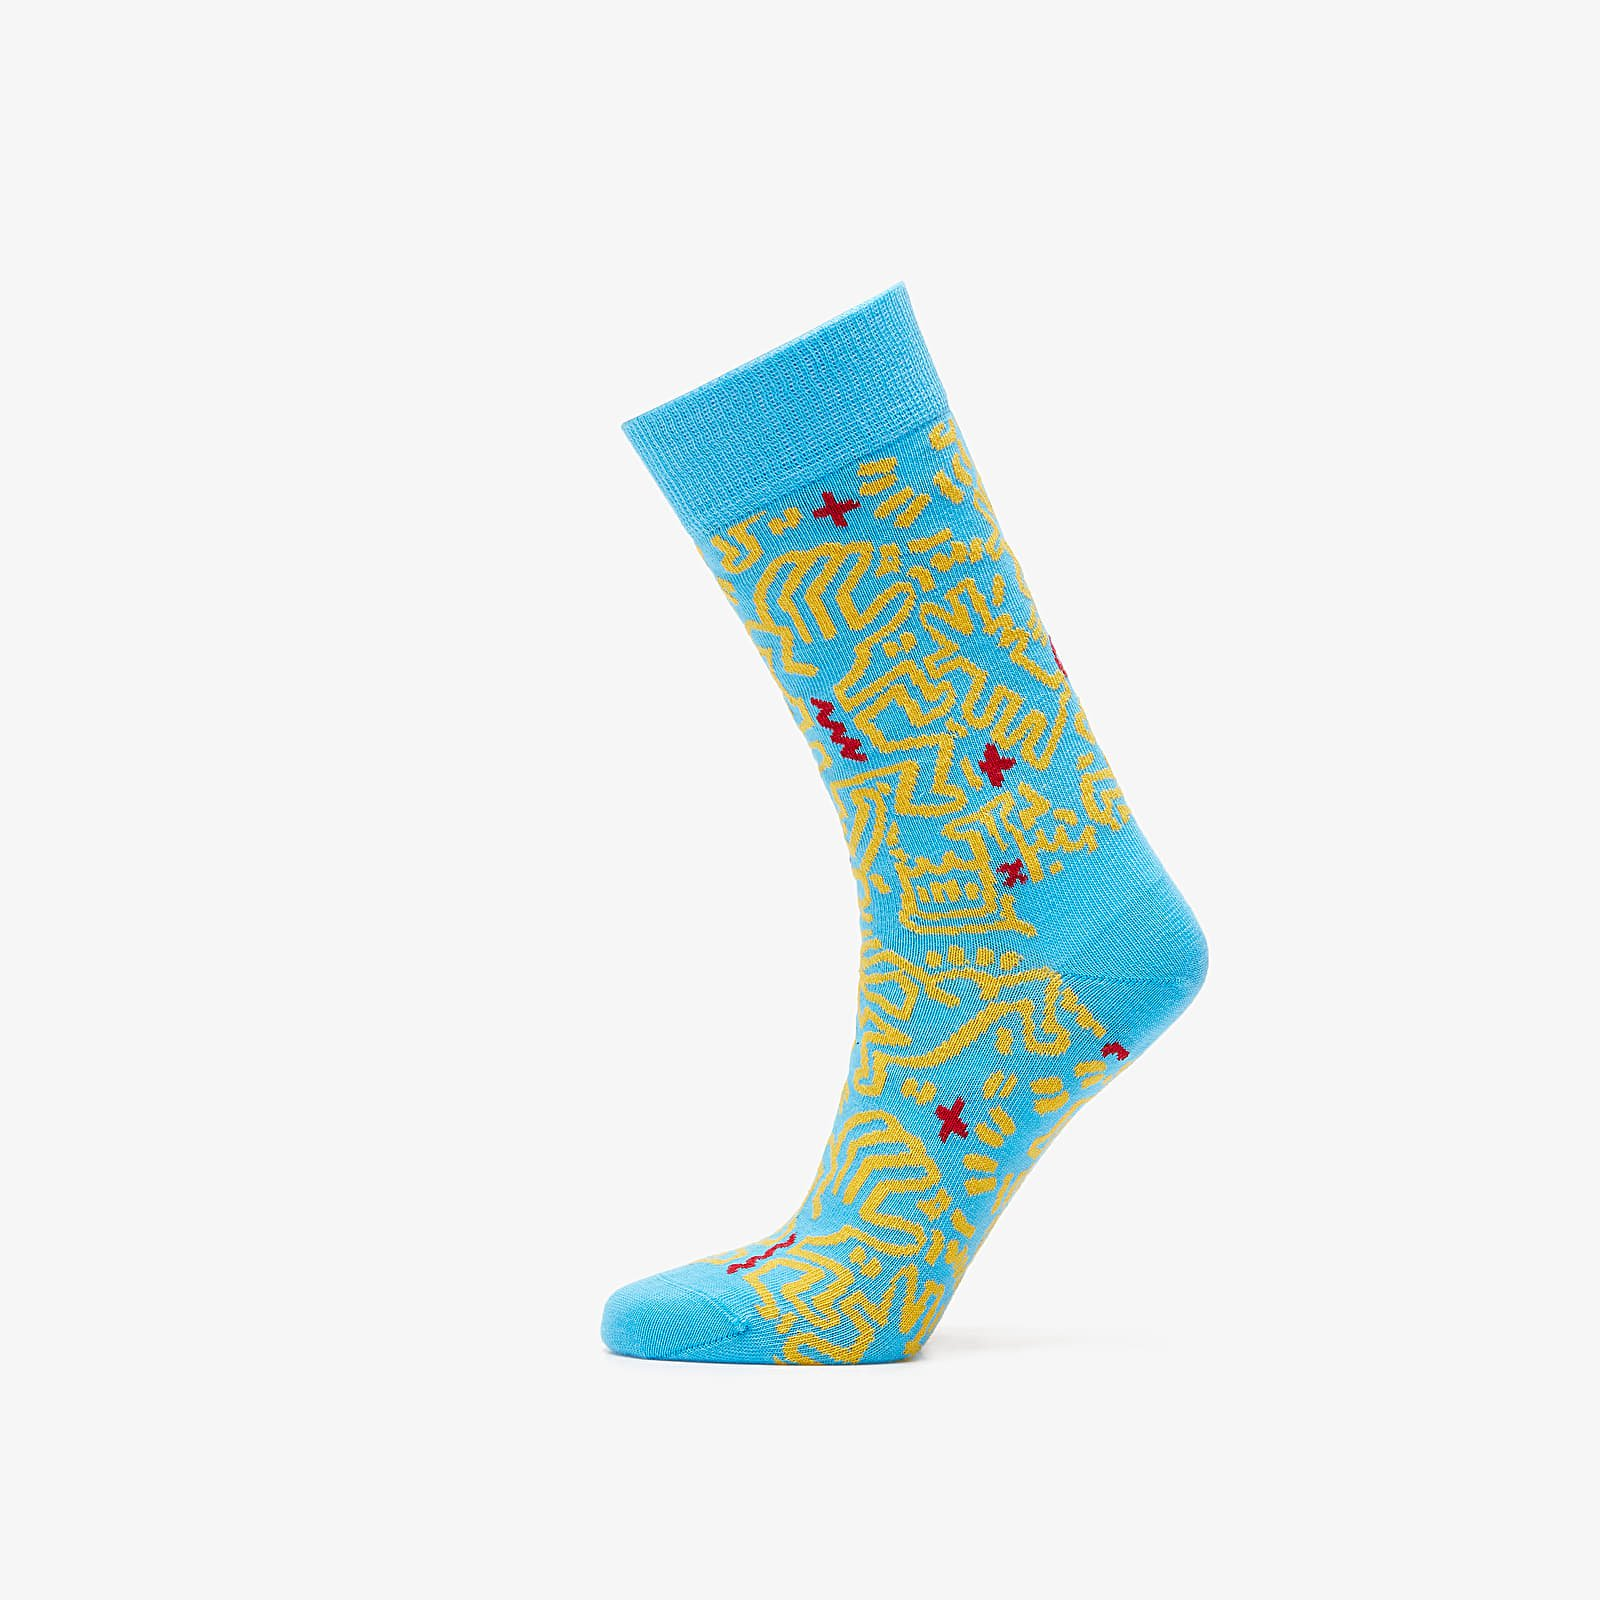 Chaussettes Happy Socks Keith Haring All Over Socks Multicolor